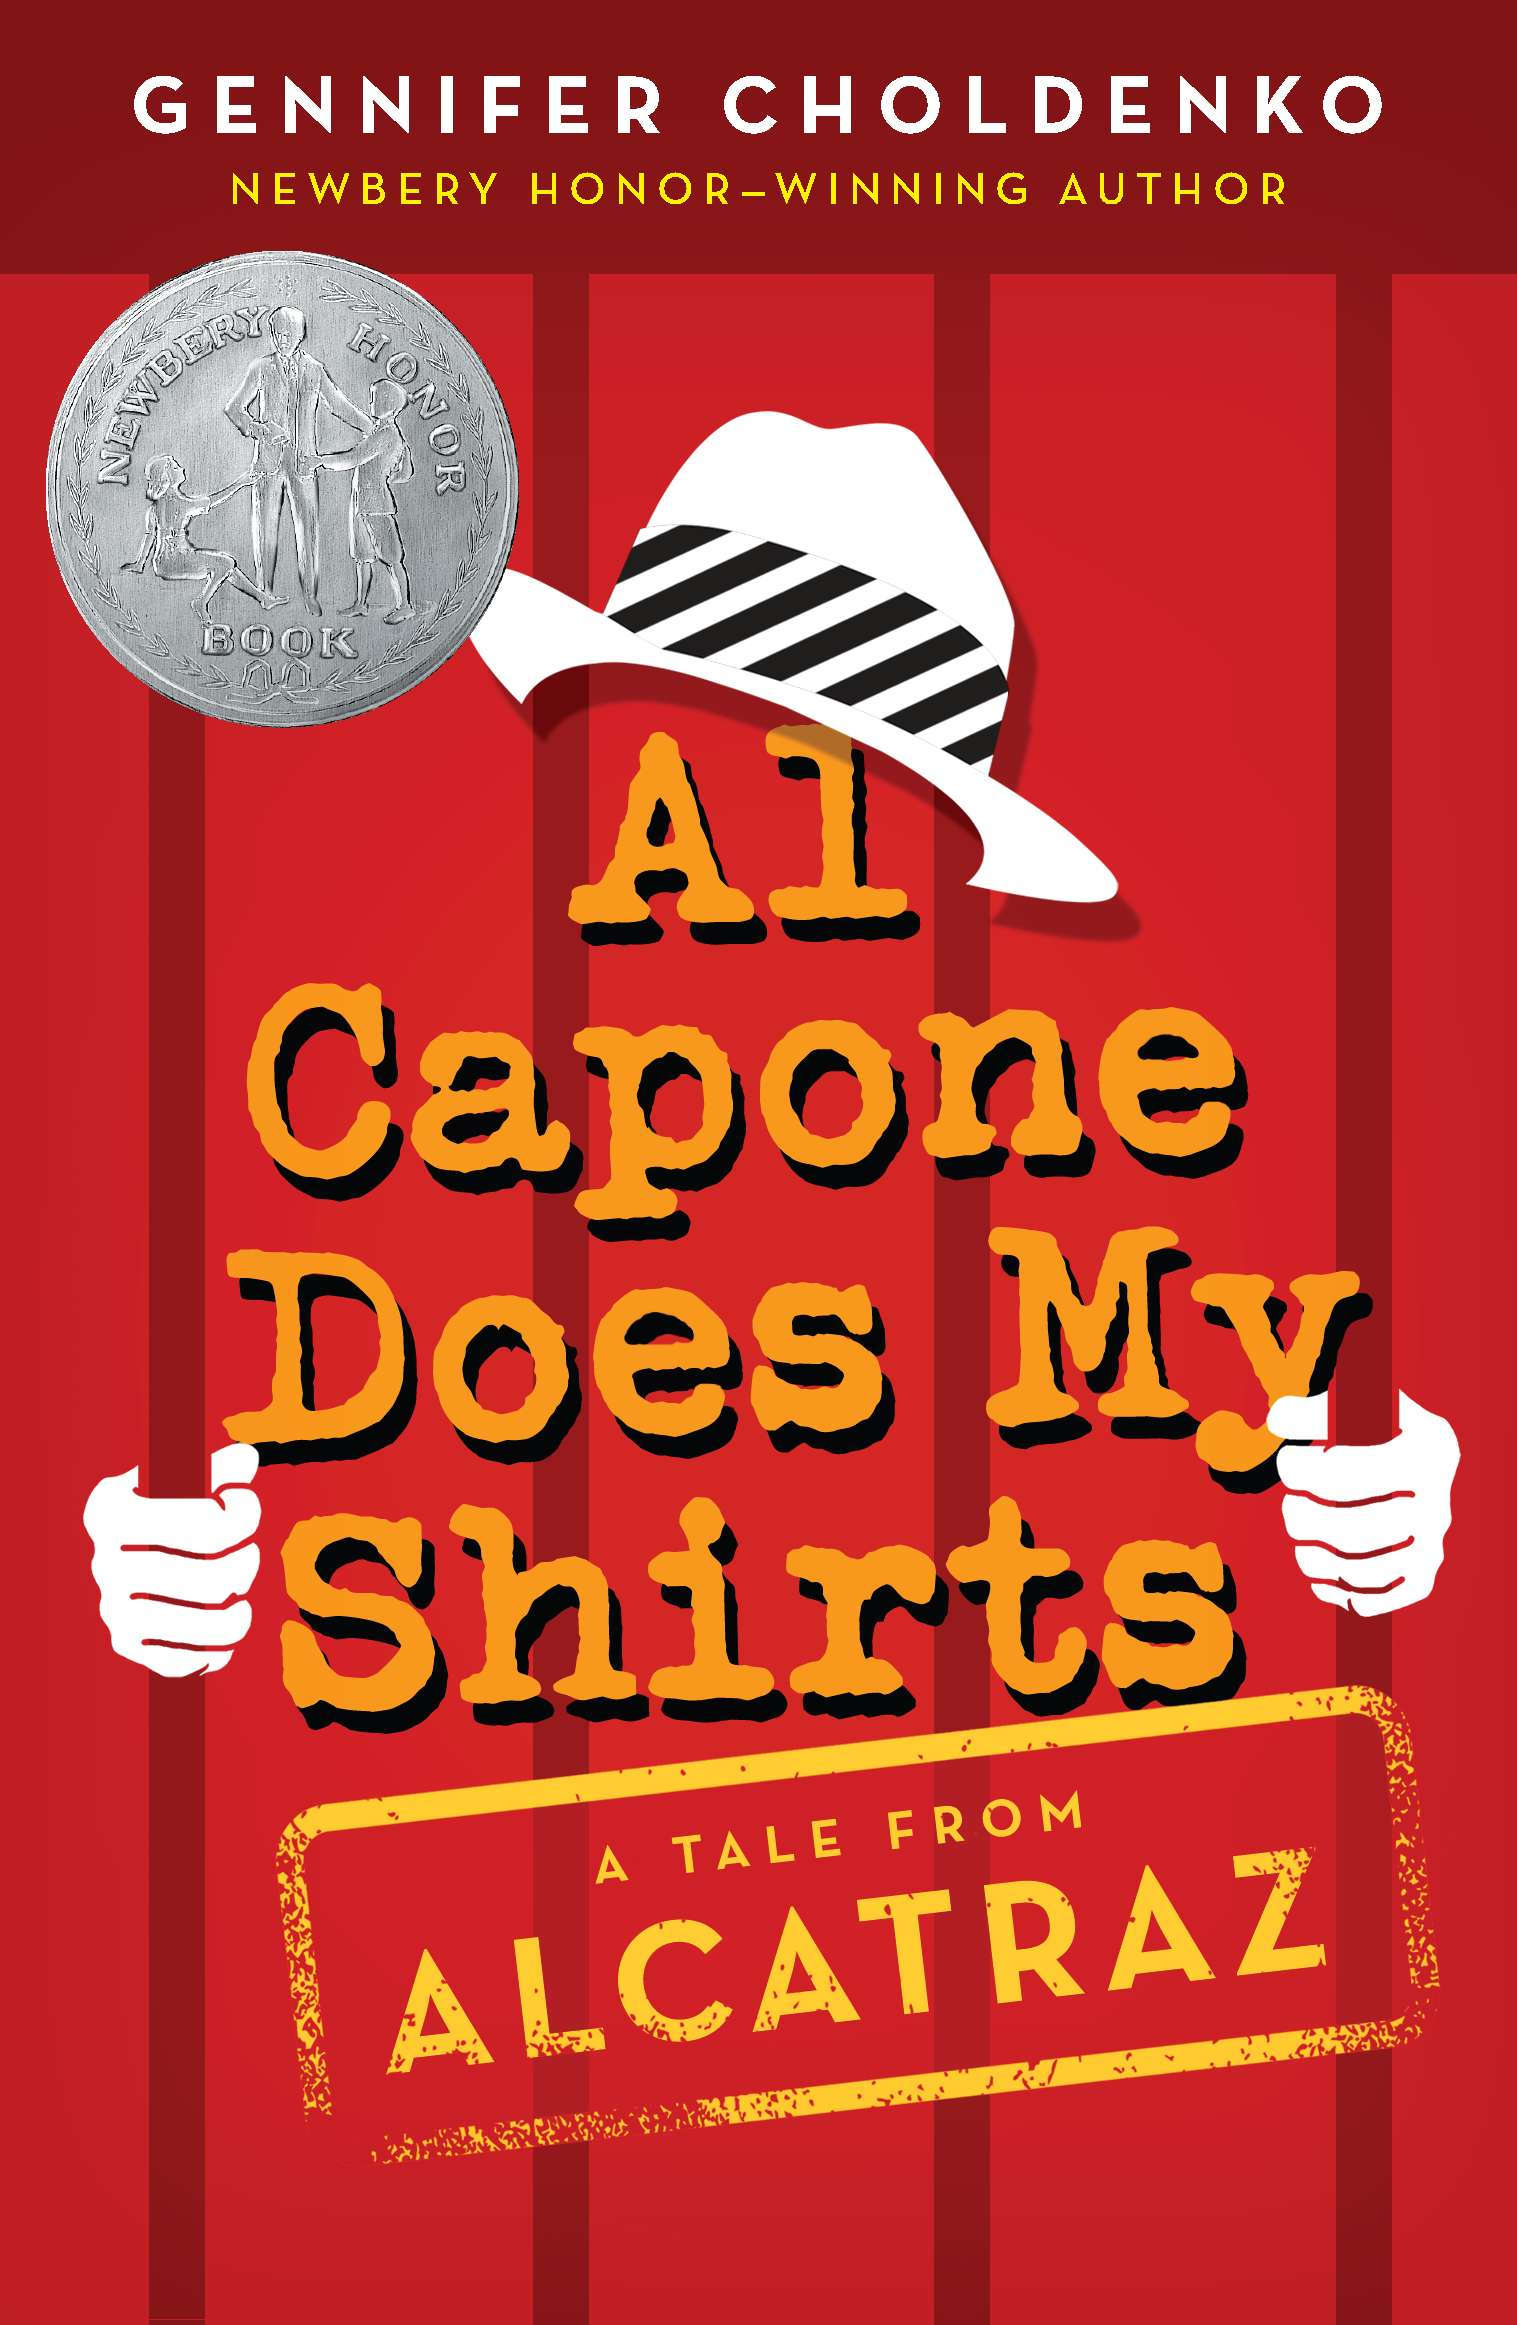 Al capone does my shirts essay